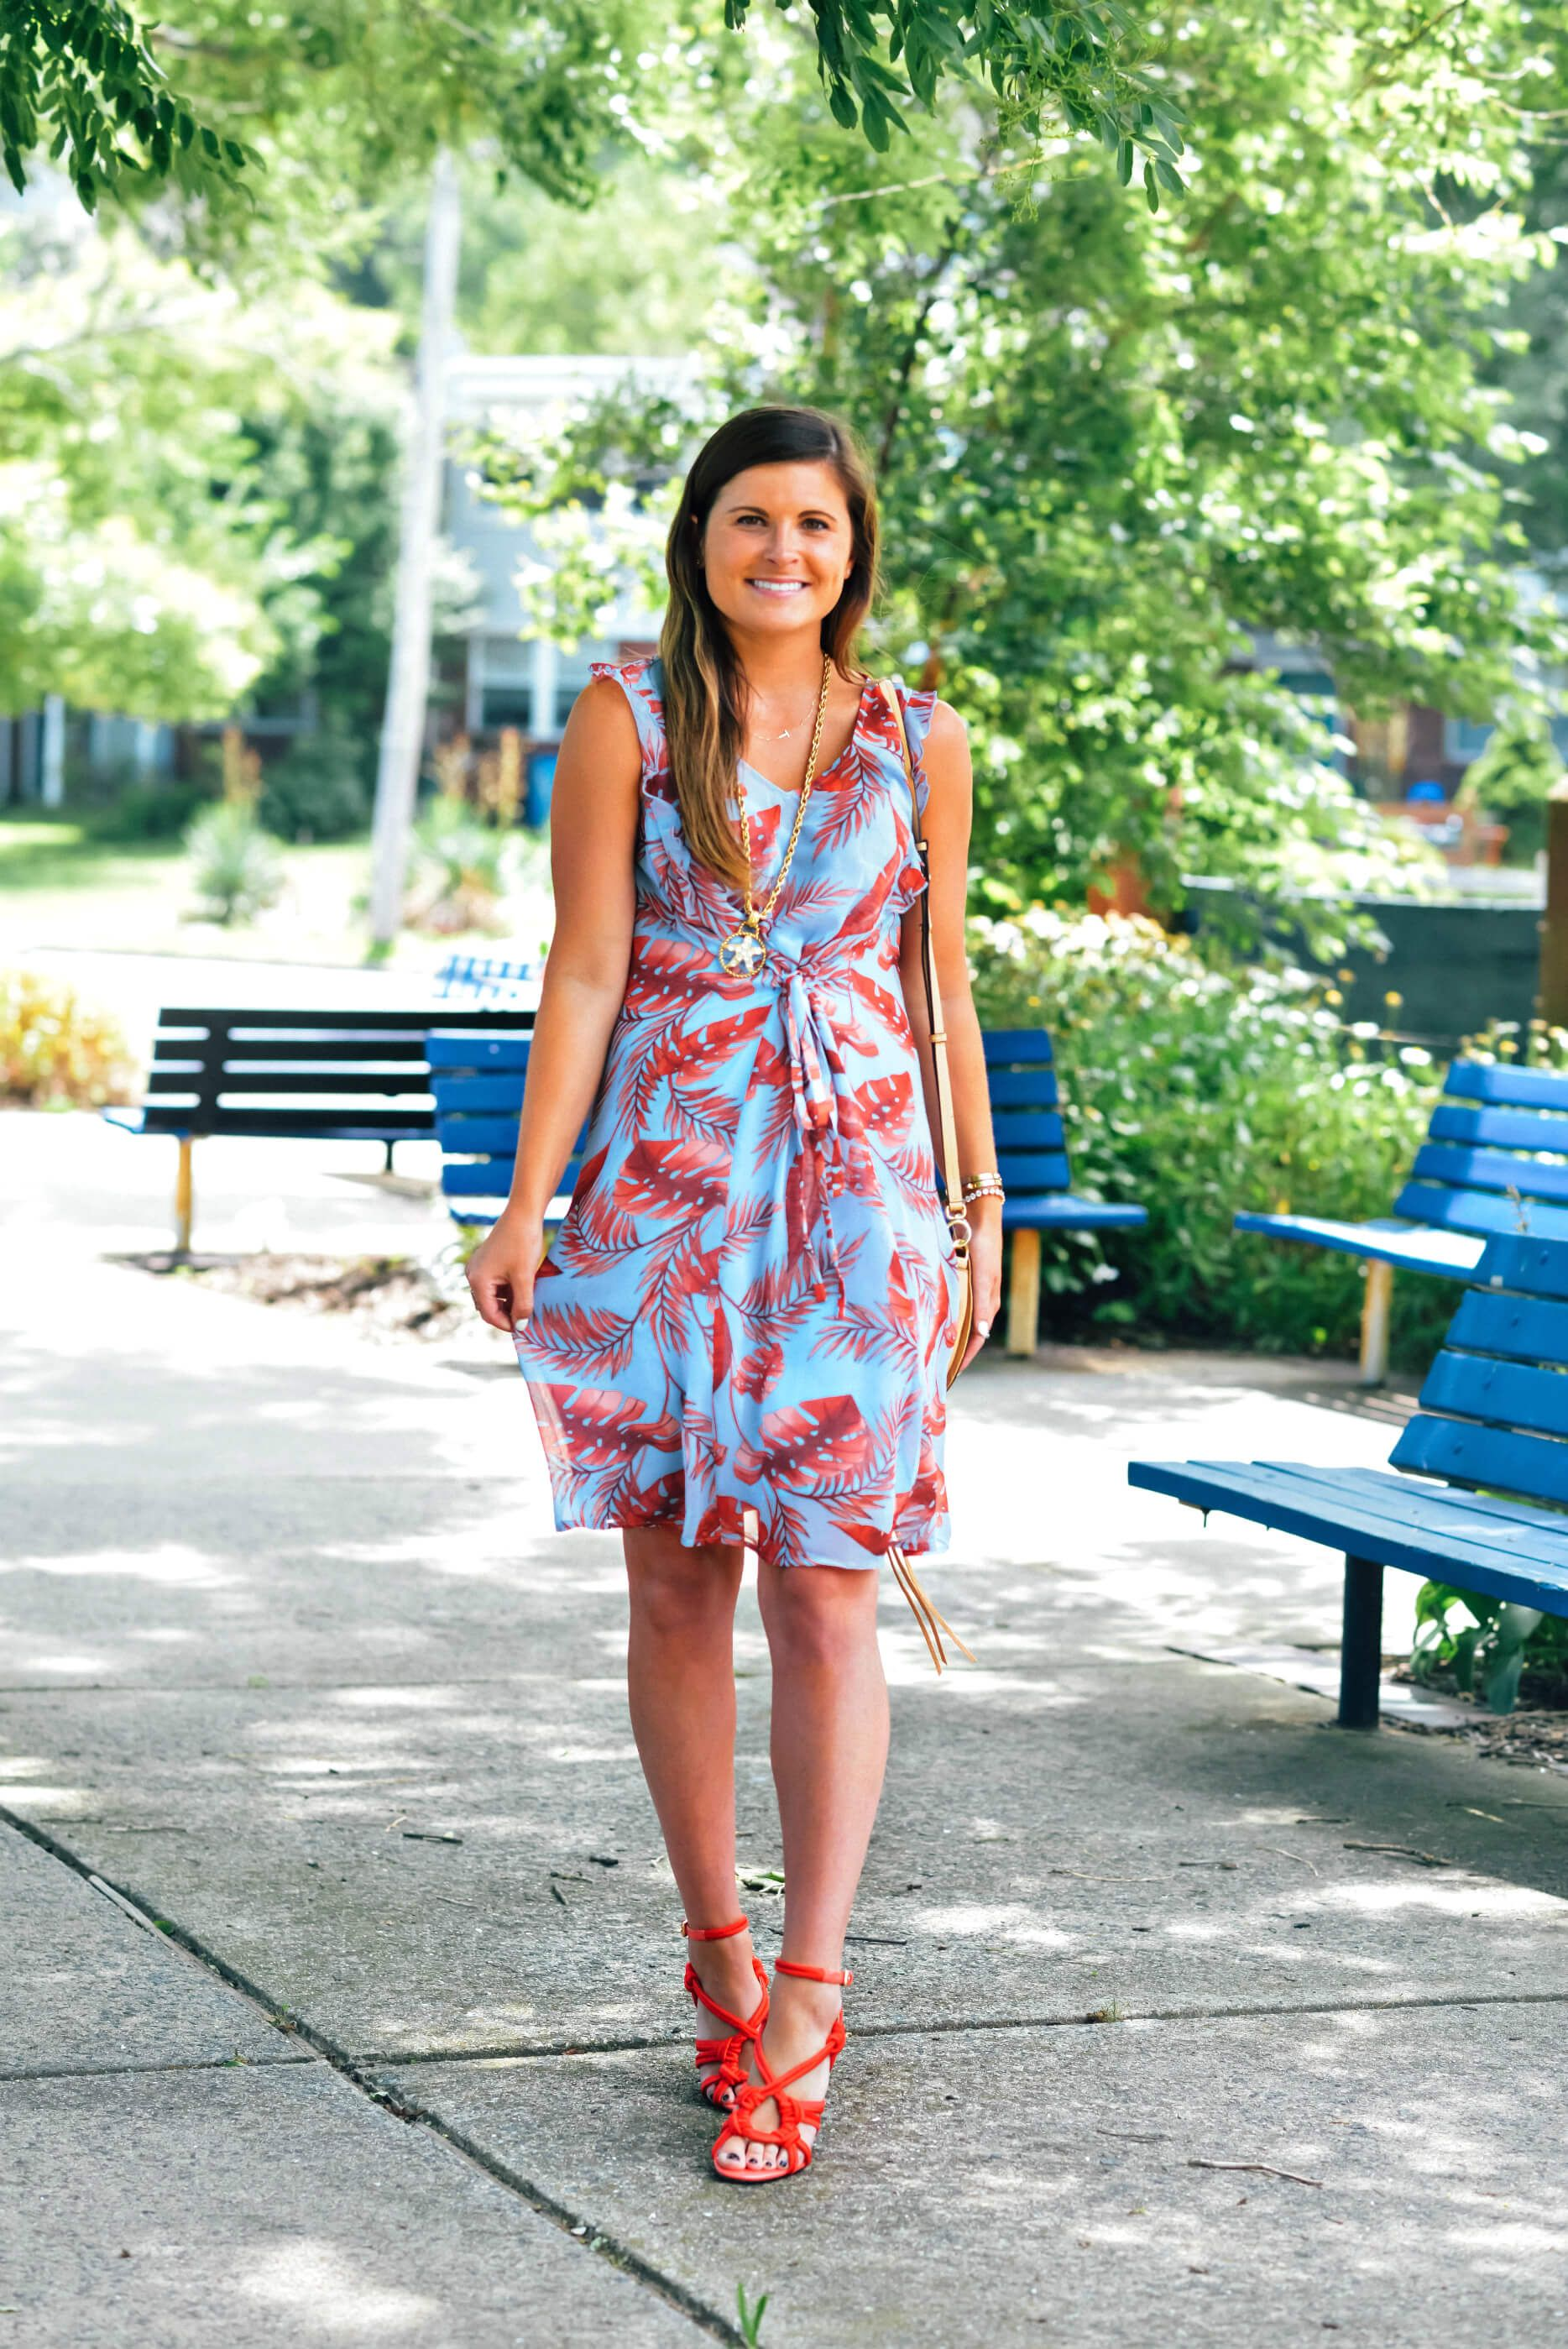 Wrap Star To Be Bright Bright Summer Outfits Tropical Print Dress Print Dress